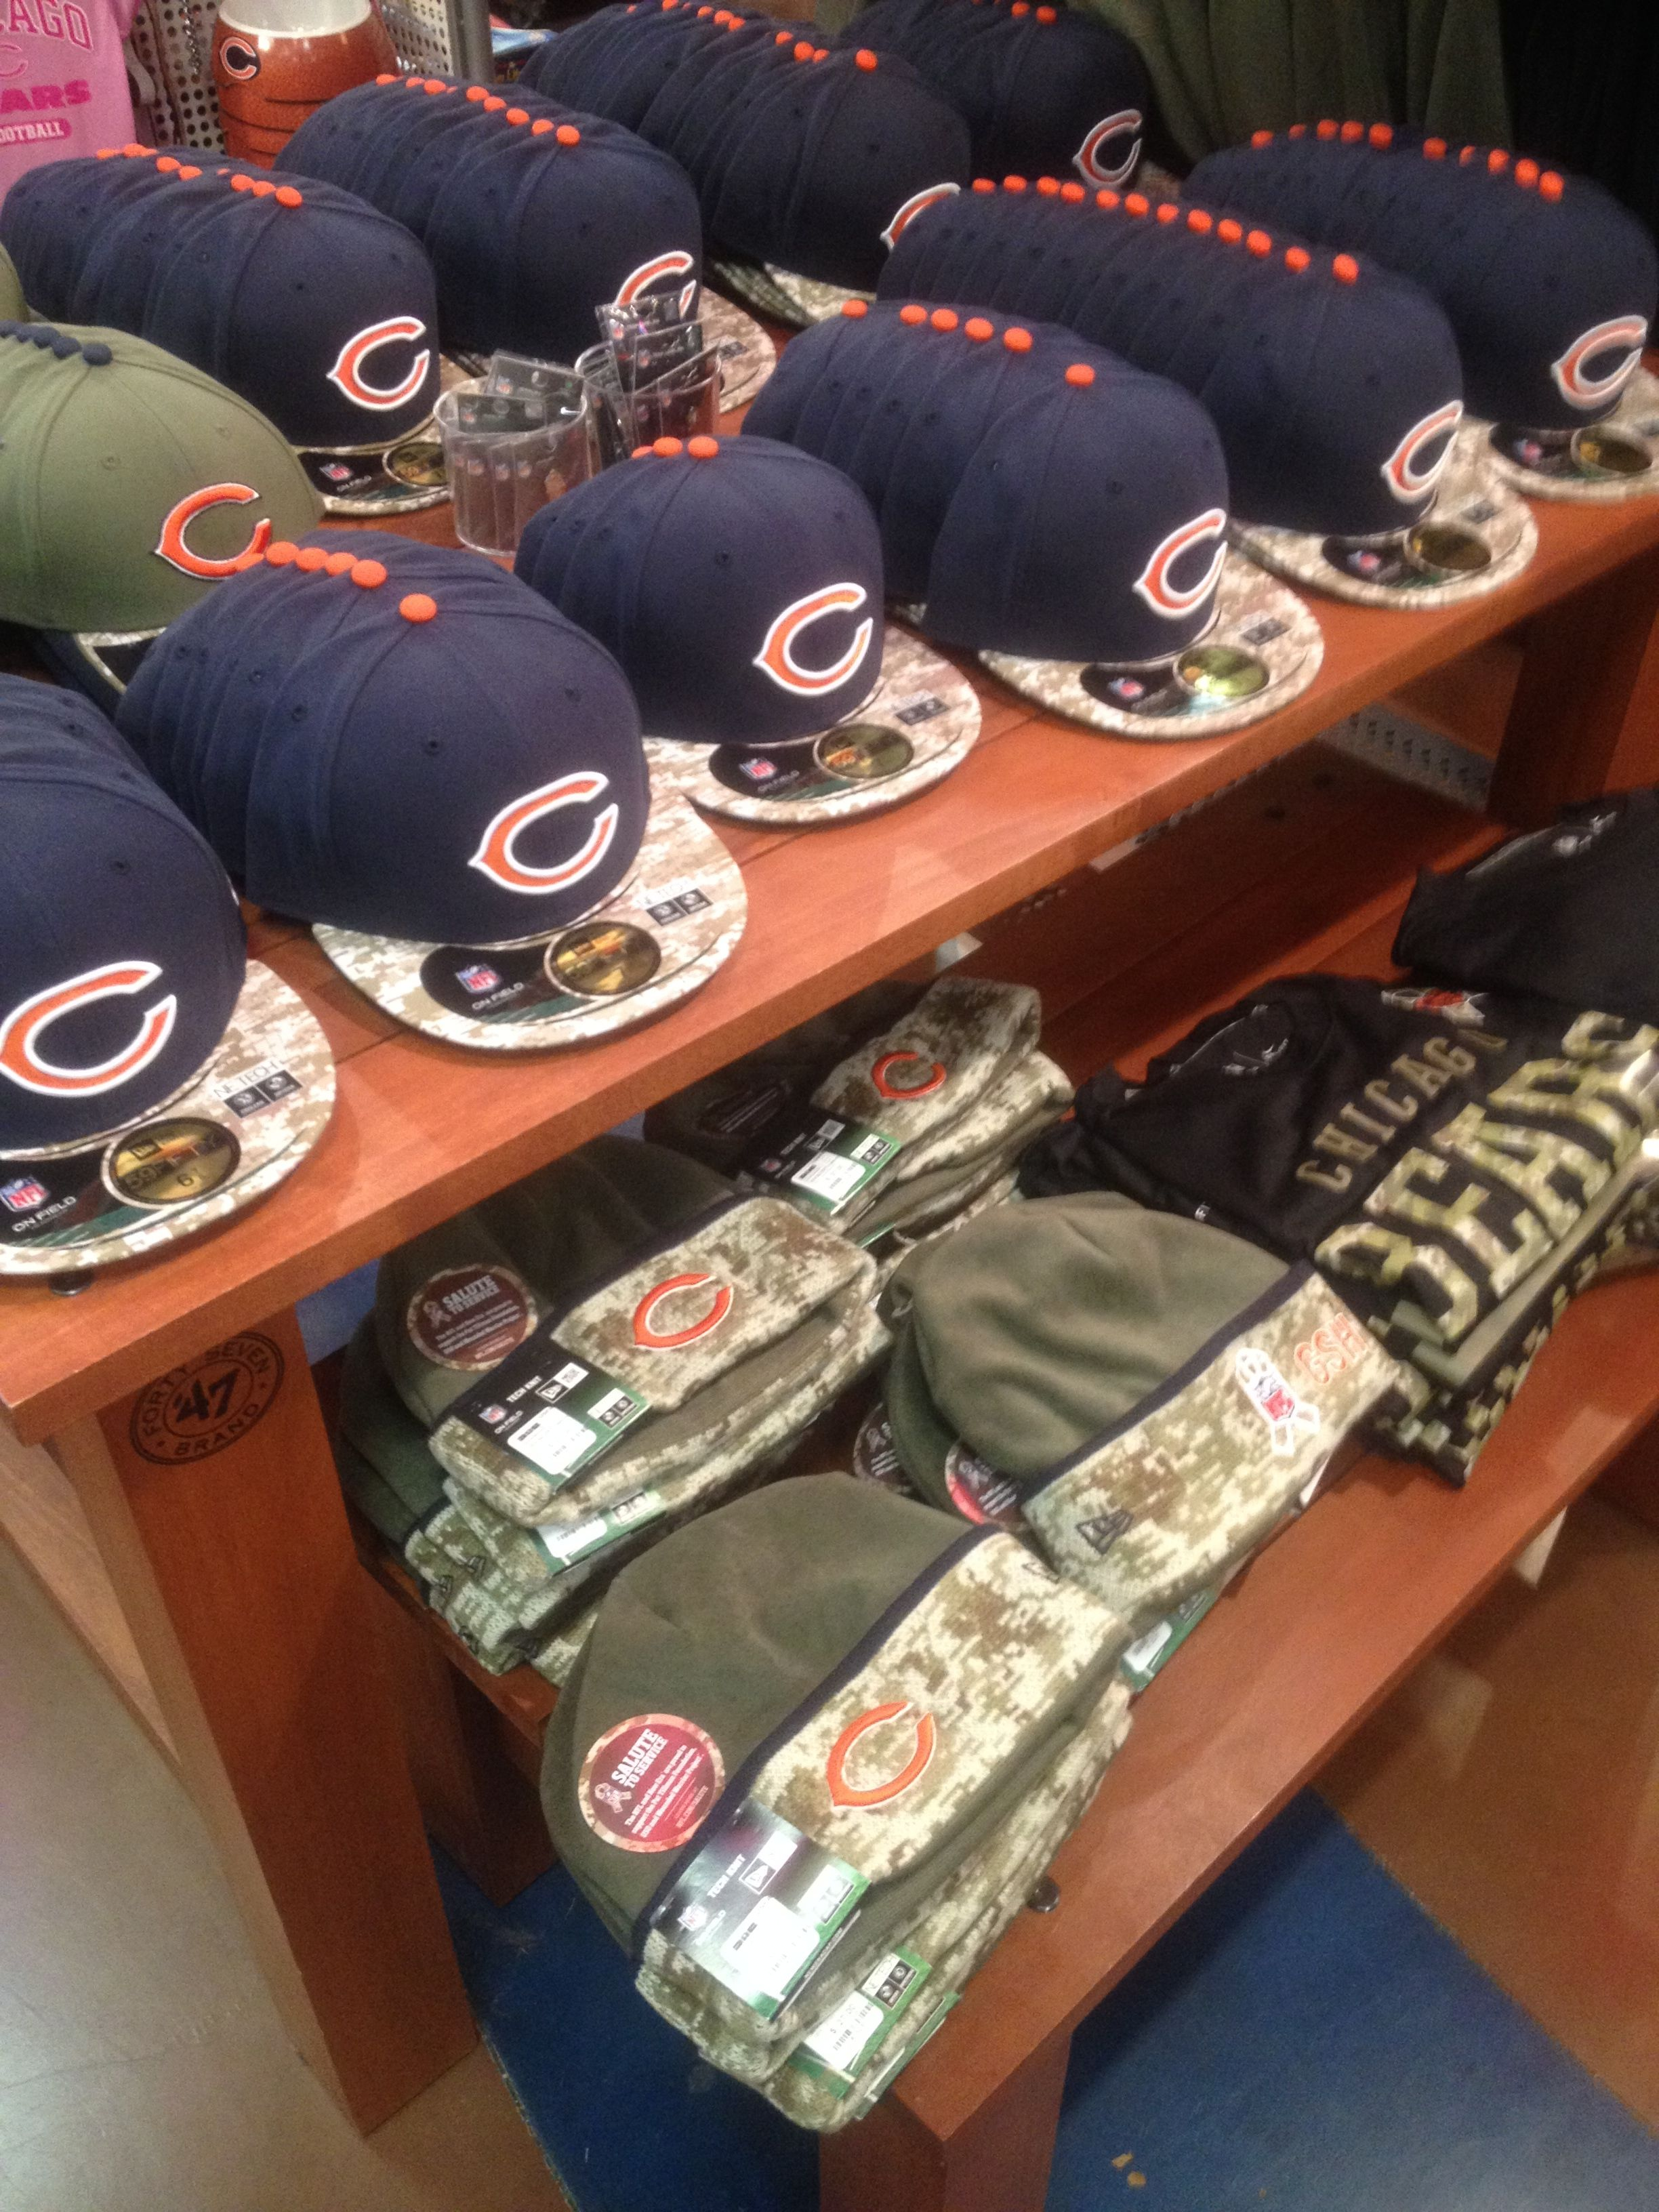 531511882b216d Went to the Chicago Bears Soldier Field today and noticed the NFL military  appreciation in the